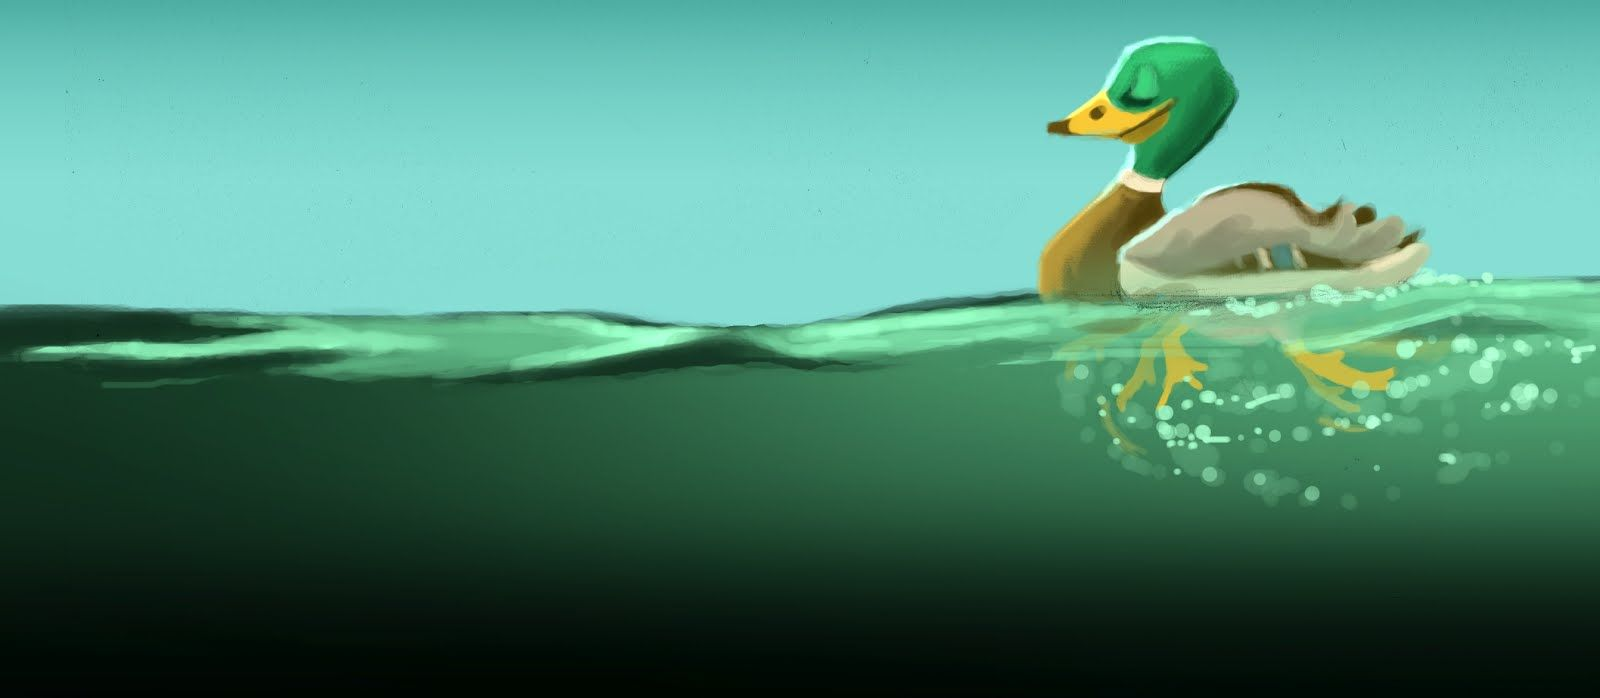 To the water duckling